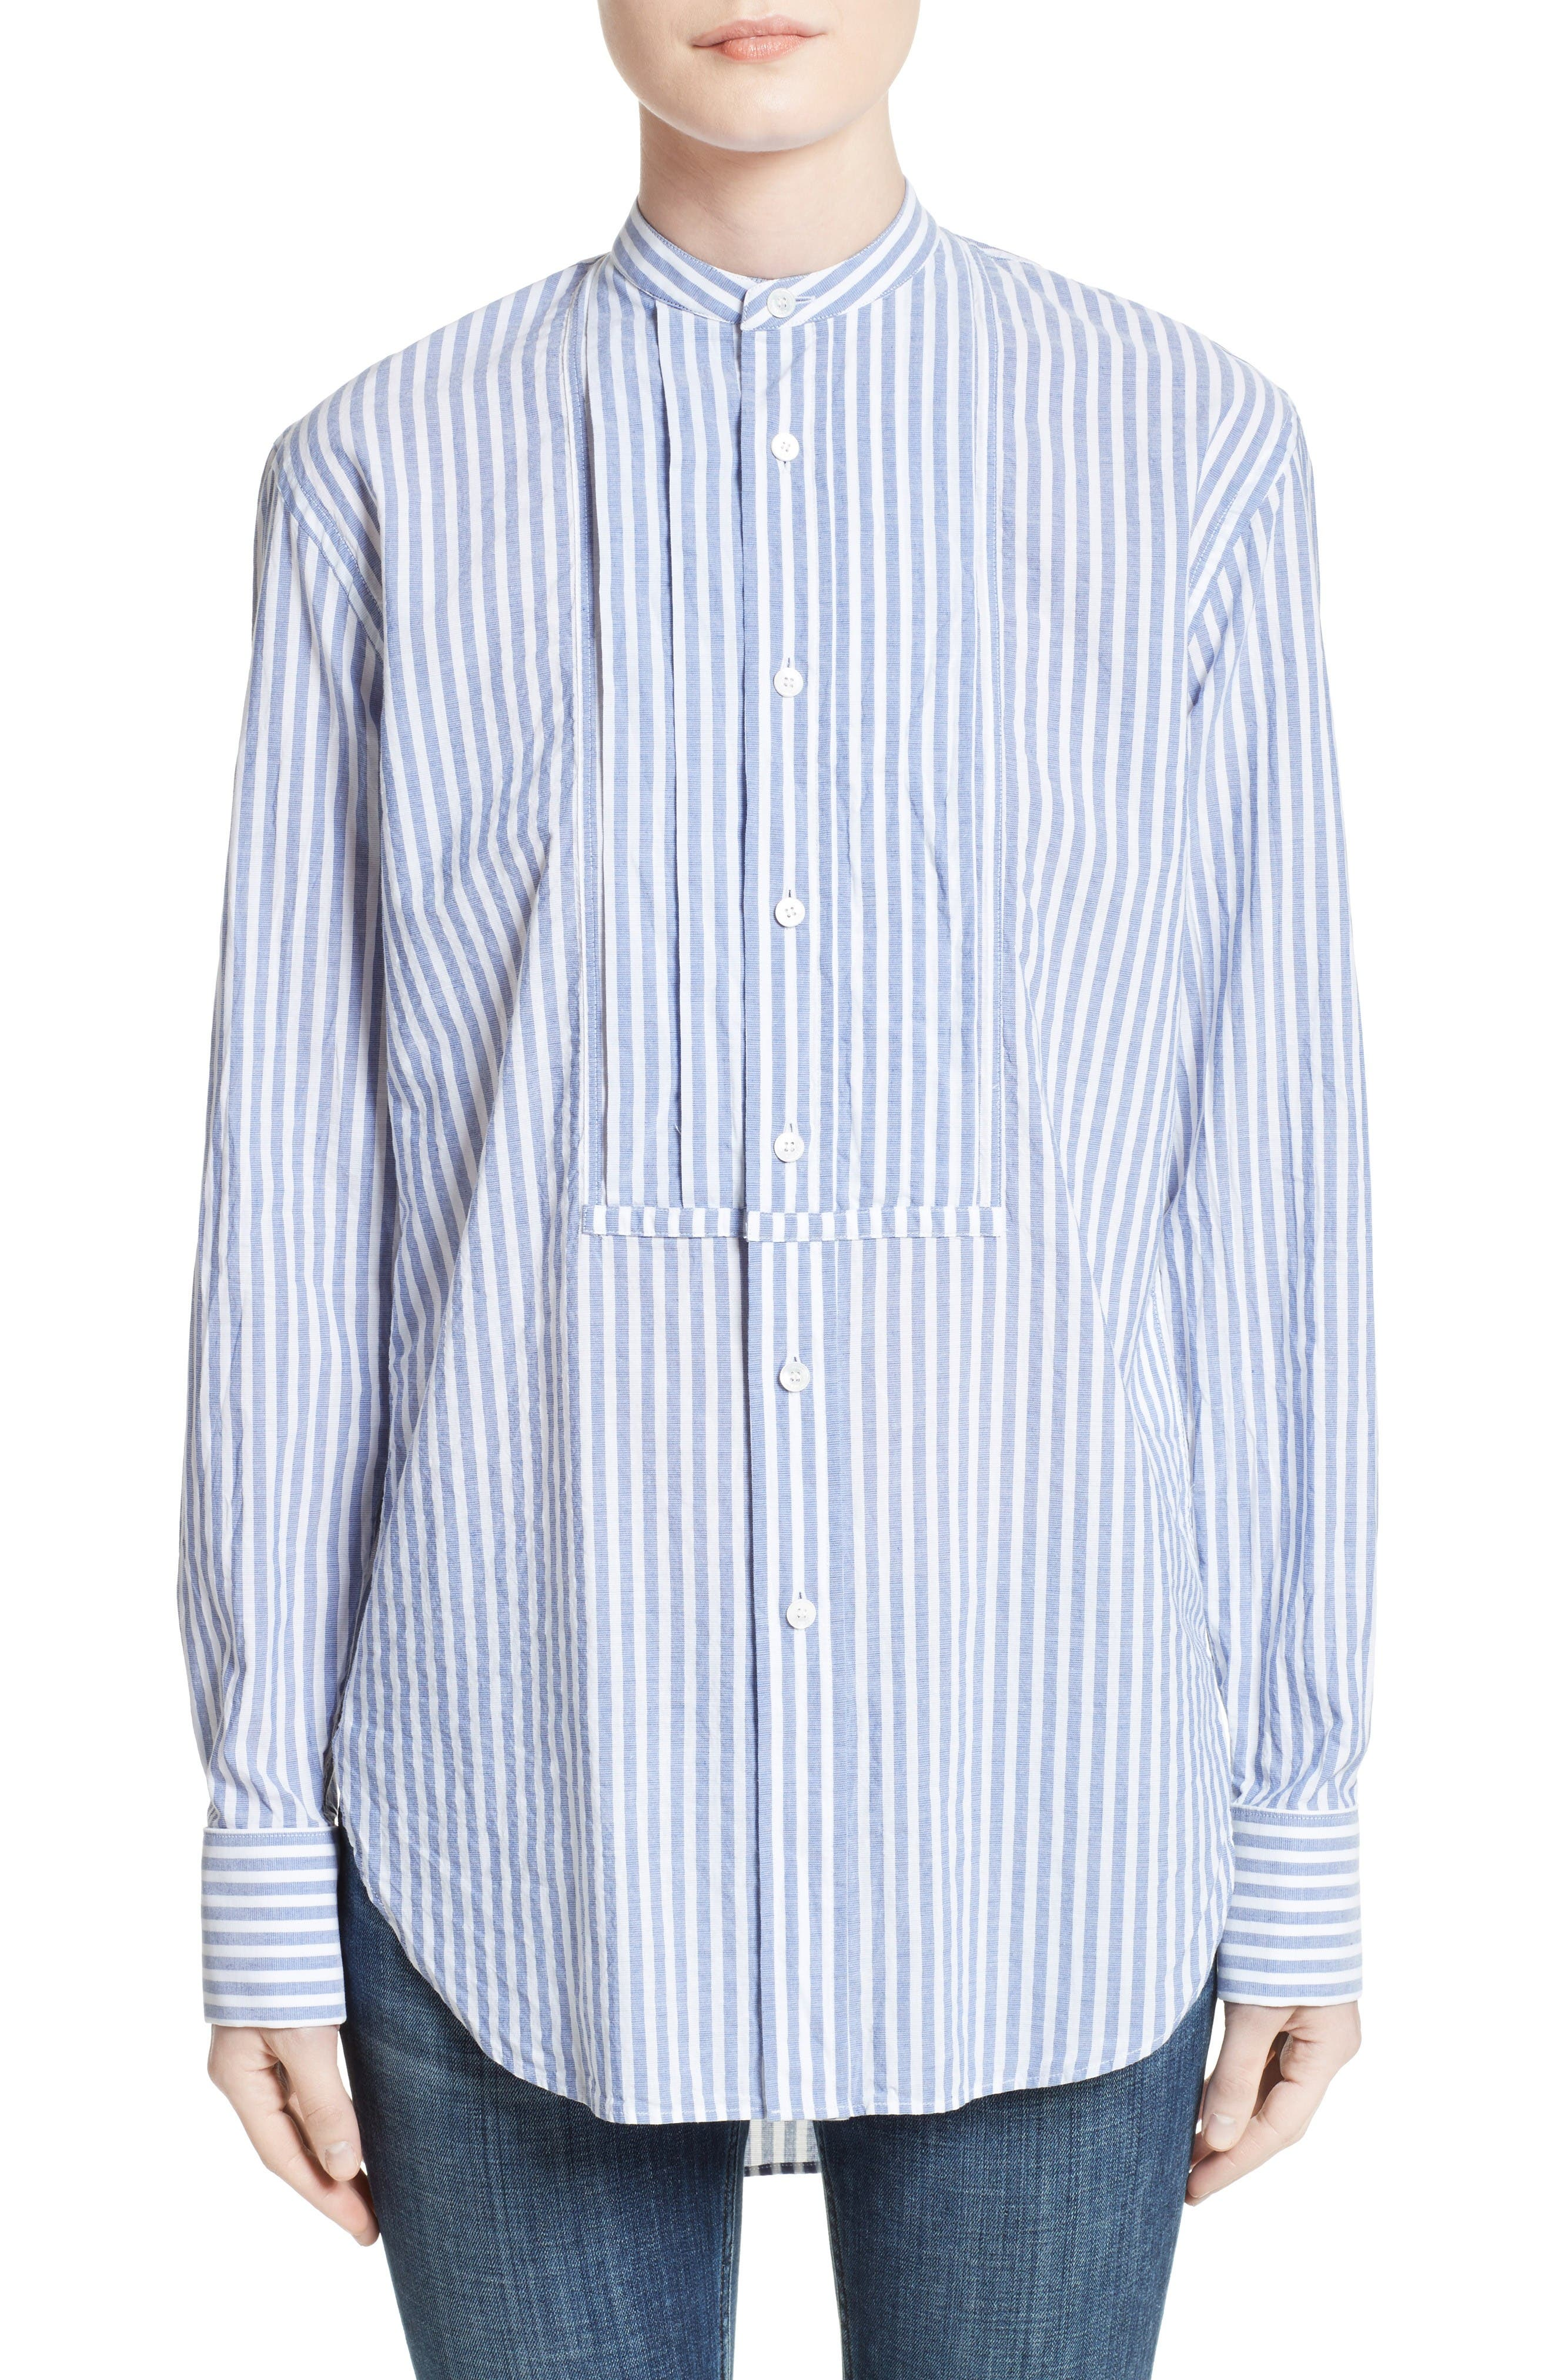 Benfleet Stripe Cotton Top,                             Main thumbnail 1, color,                             Pale Blue/ White